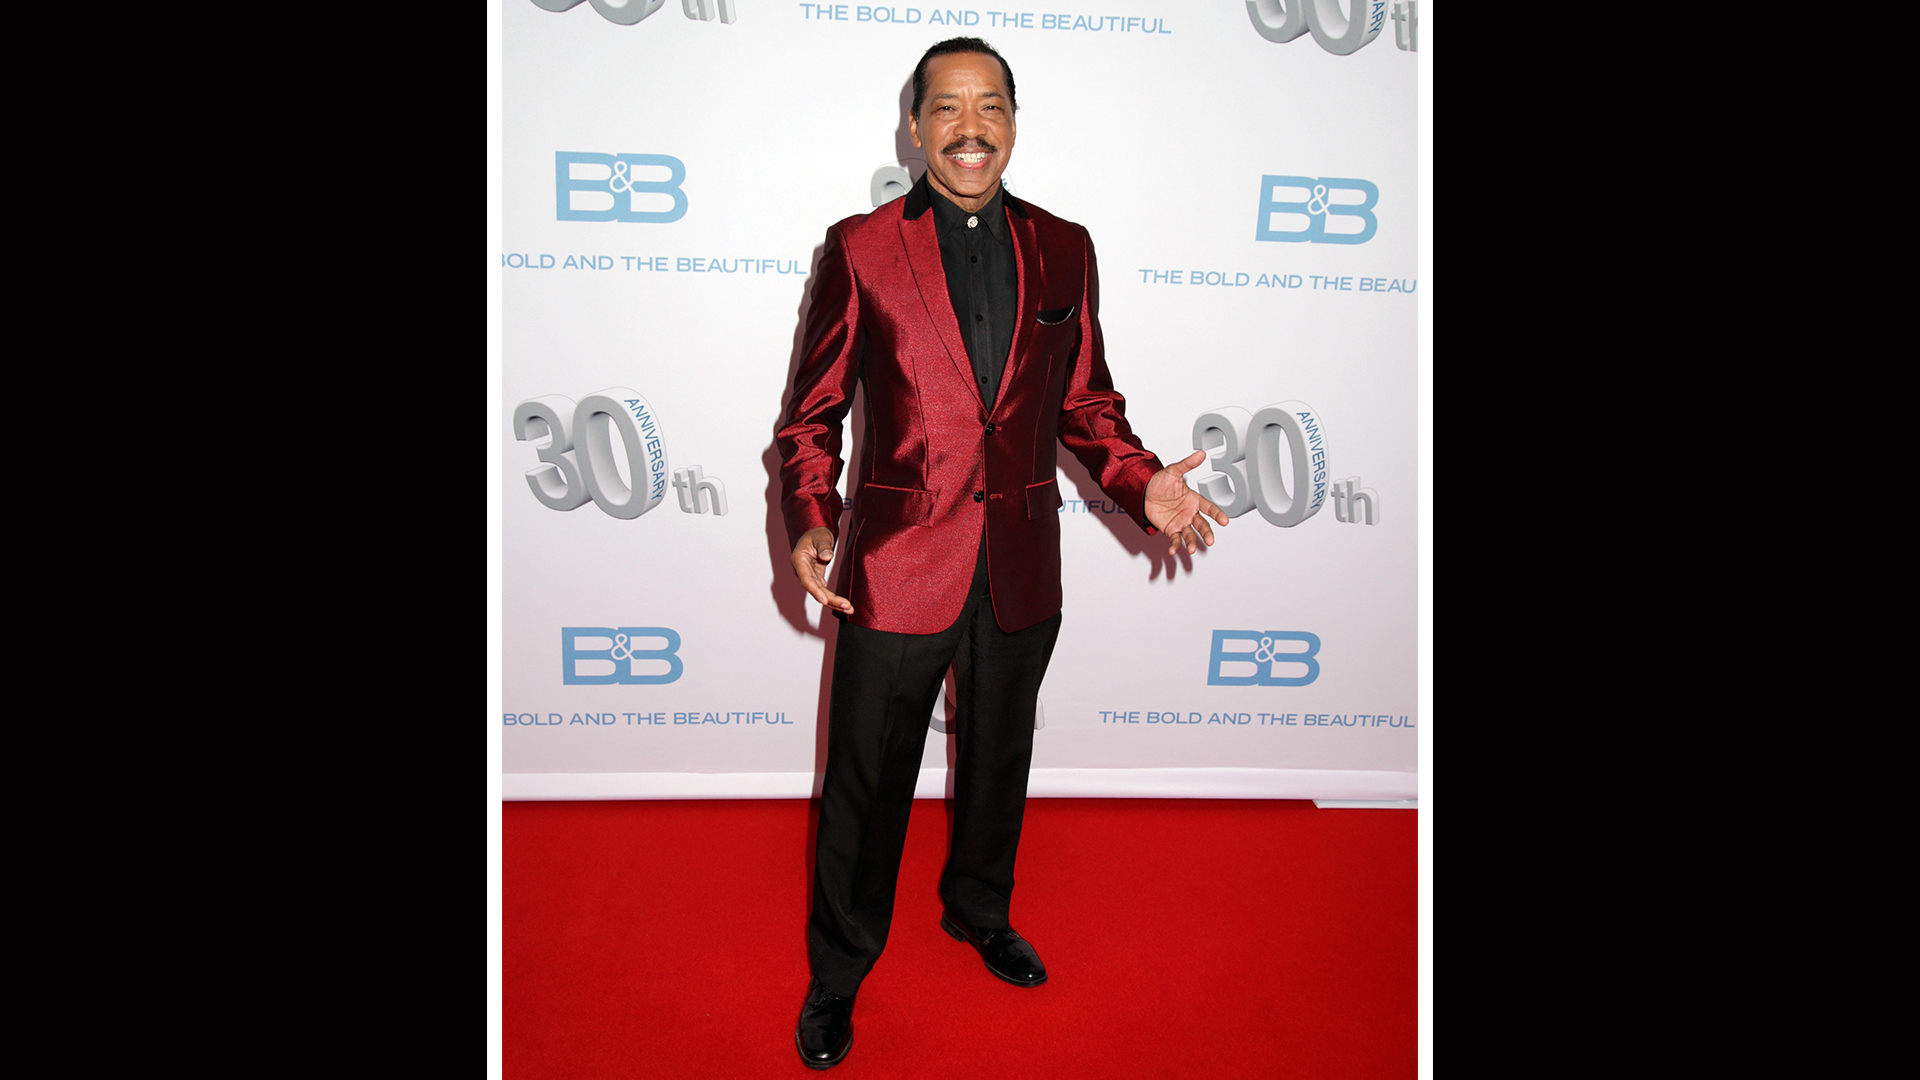 Obba Babatundé makes a bold statement in a sleek burgundy sports coat.